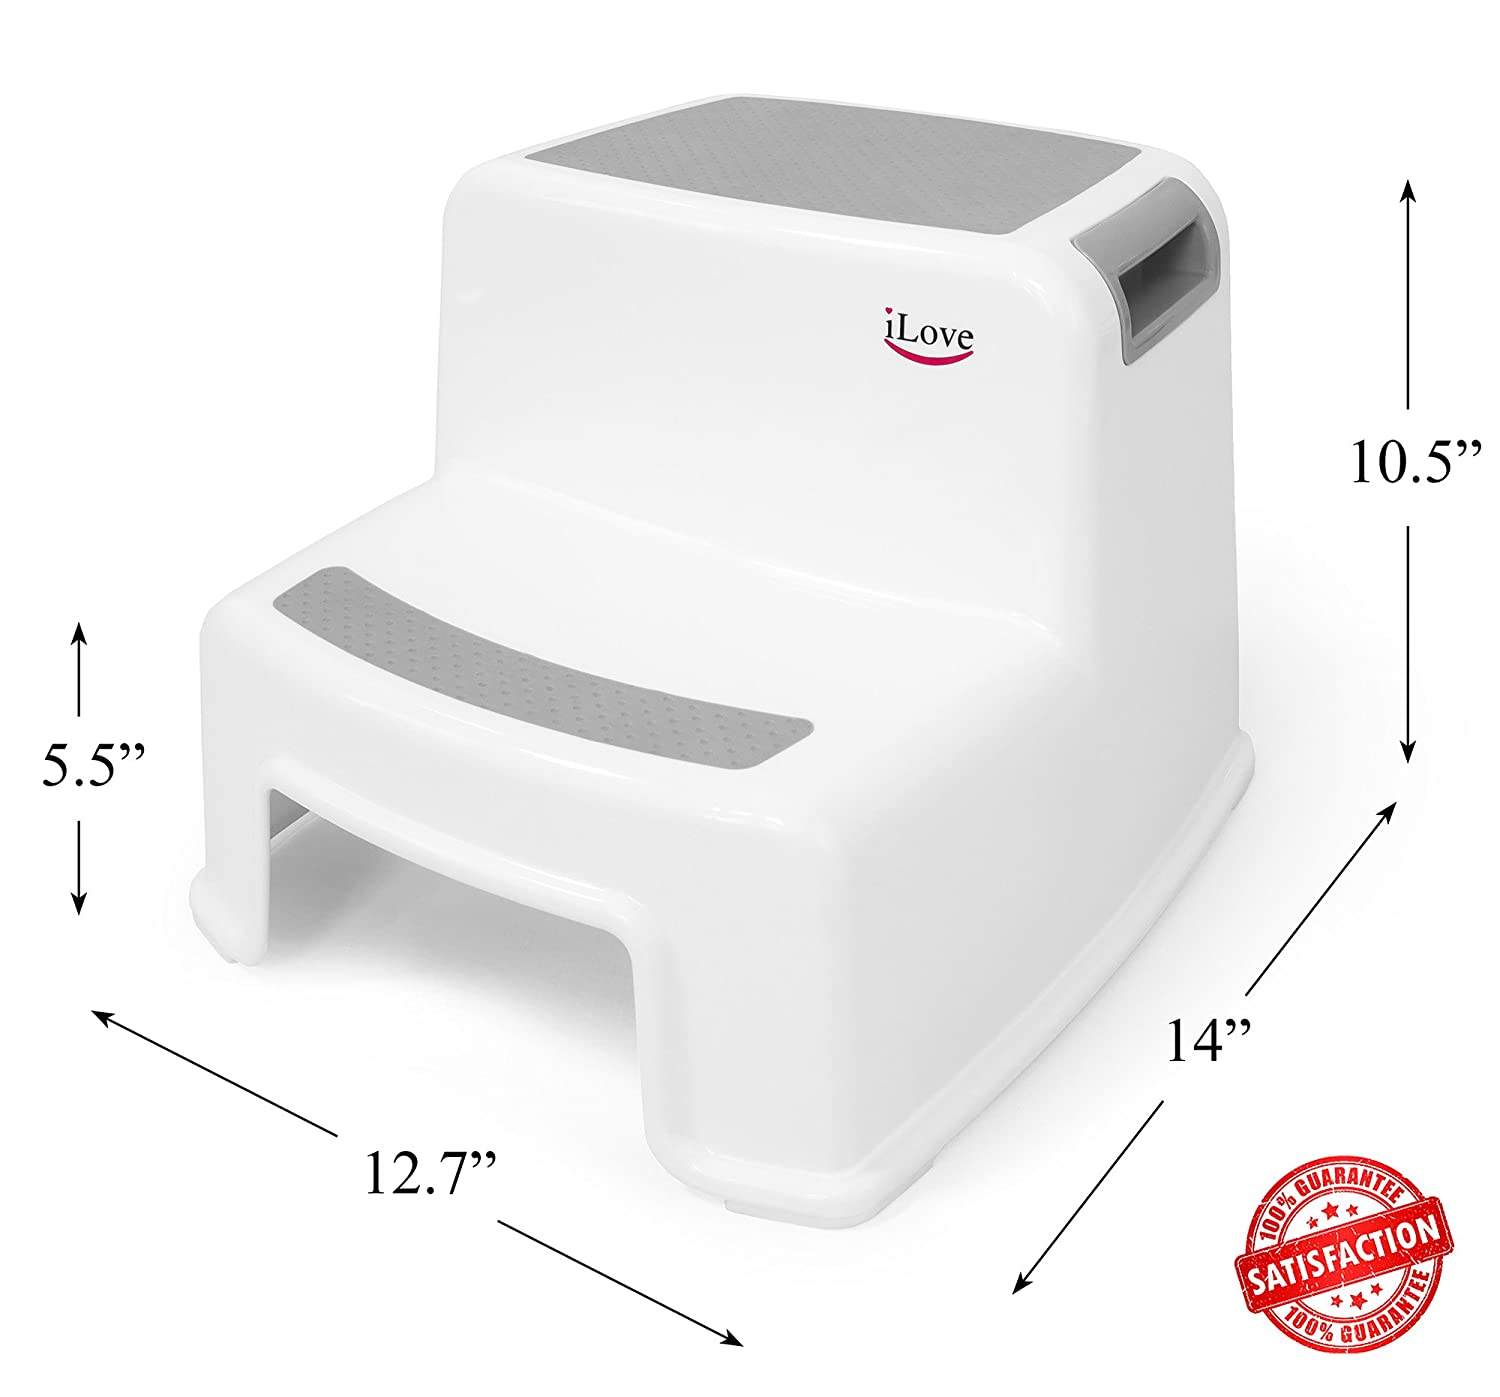 Peachy 2 Step Stool For Kids Gray 2 Pack Toddler Stool For Toilet Potty Training Slip Resistant Soft Grip For Safety As Bathroom Potty Stool Kitchen Unemploymentrelief Wooden Chair Designs For Living Room Unemploymentrelieforg